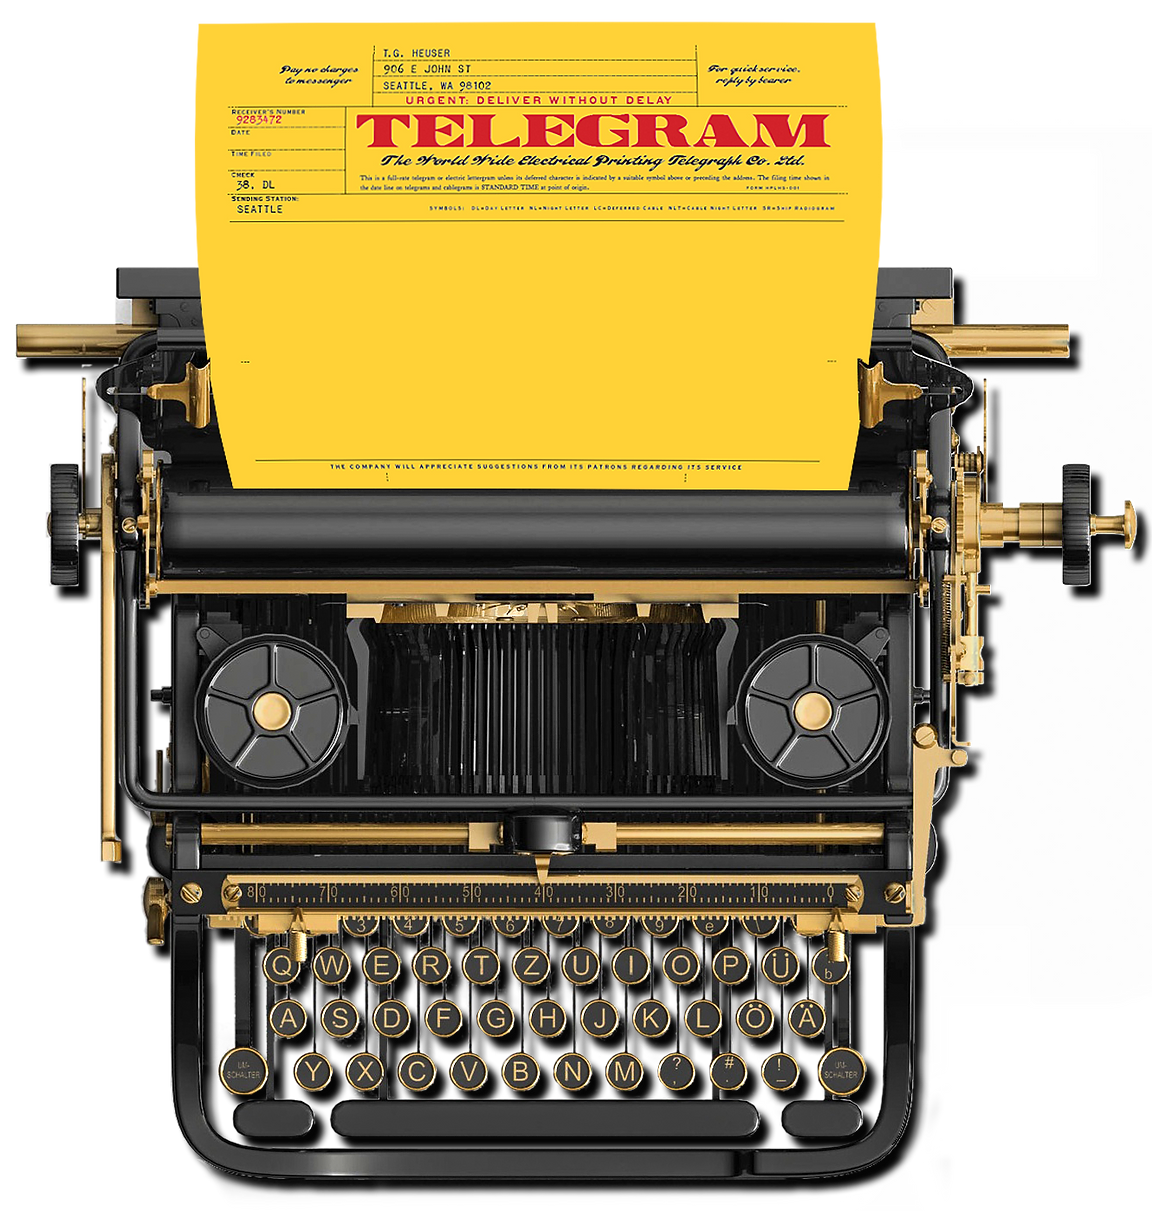 Typewriter with telegram sheet used as a contact form